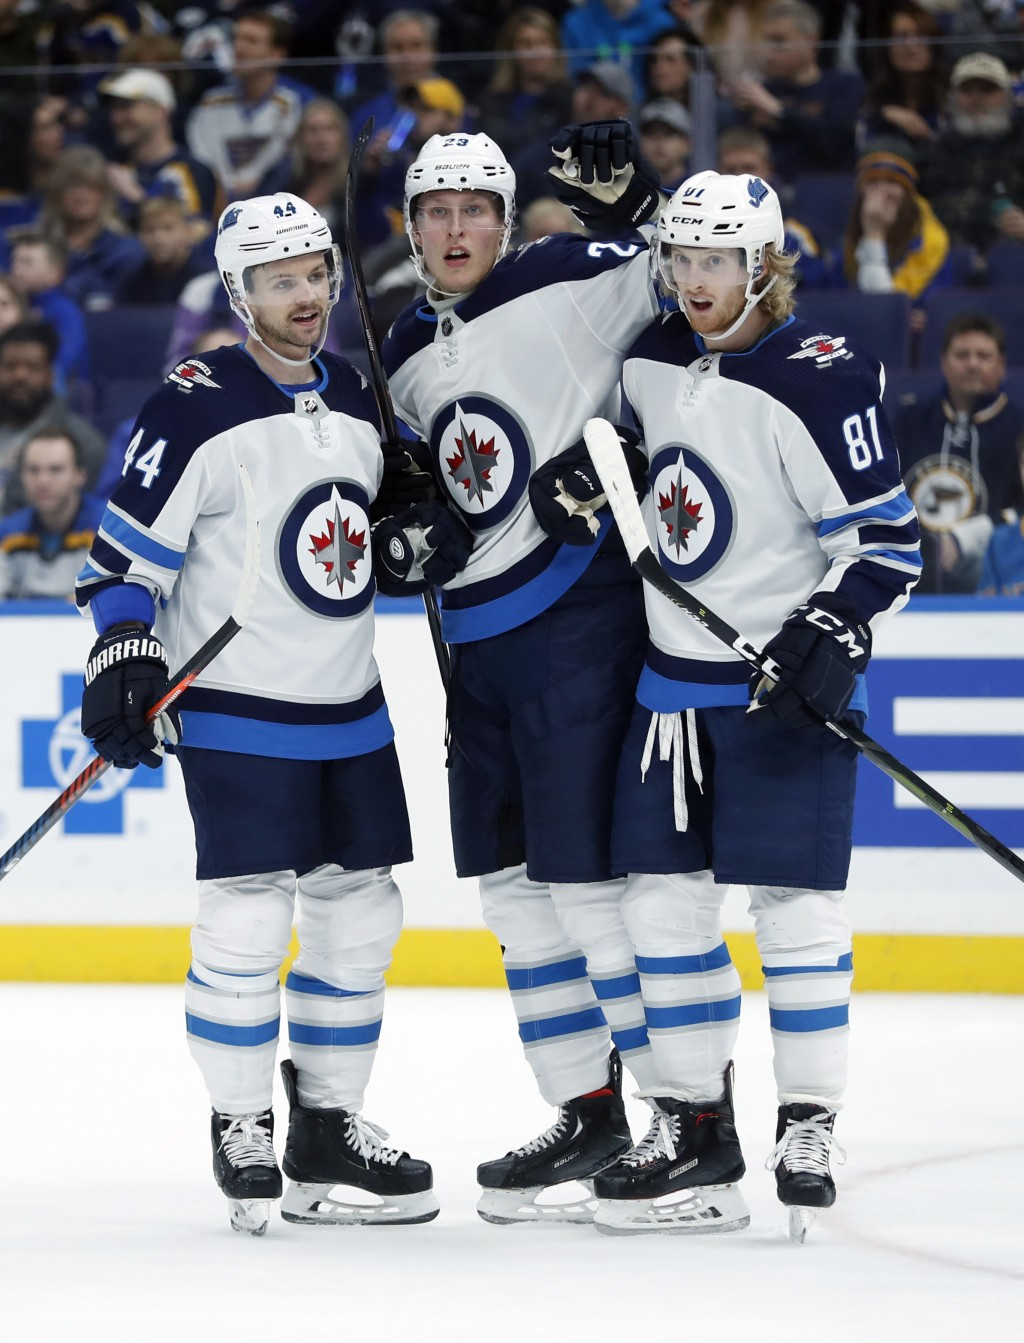 Winnipeg Jets' Patrik Laine, of Finland, is congratulated by Josh Morrissey (44) and Kyle Connor (81) after scoring during the first period of an NHL